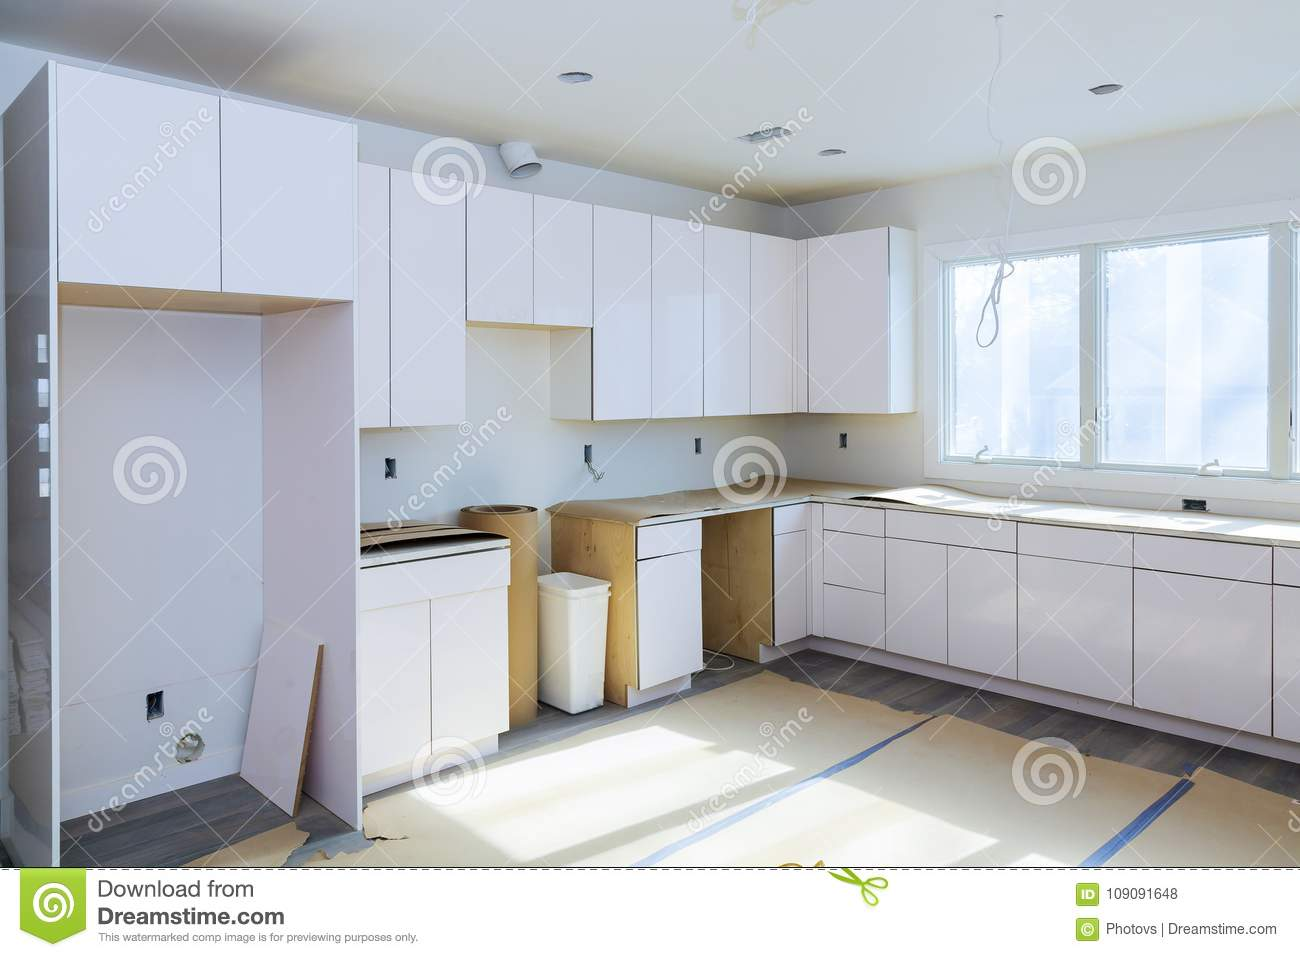 Installing New Induction Hob In Modern Kitchen Kitchen Installation Kitchen  Cabinet.